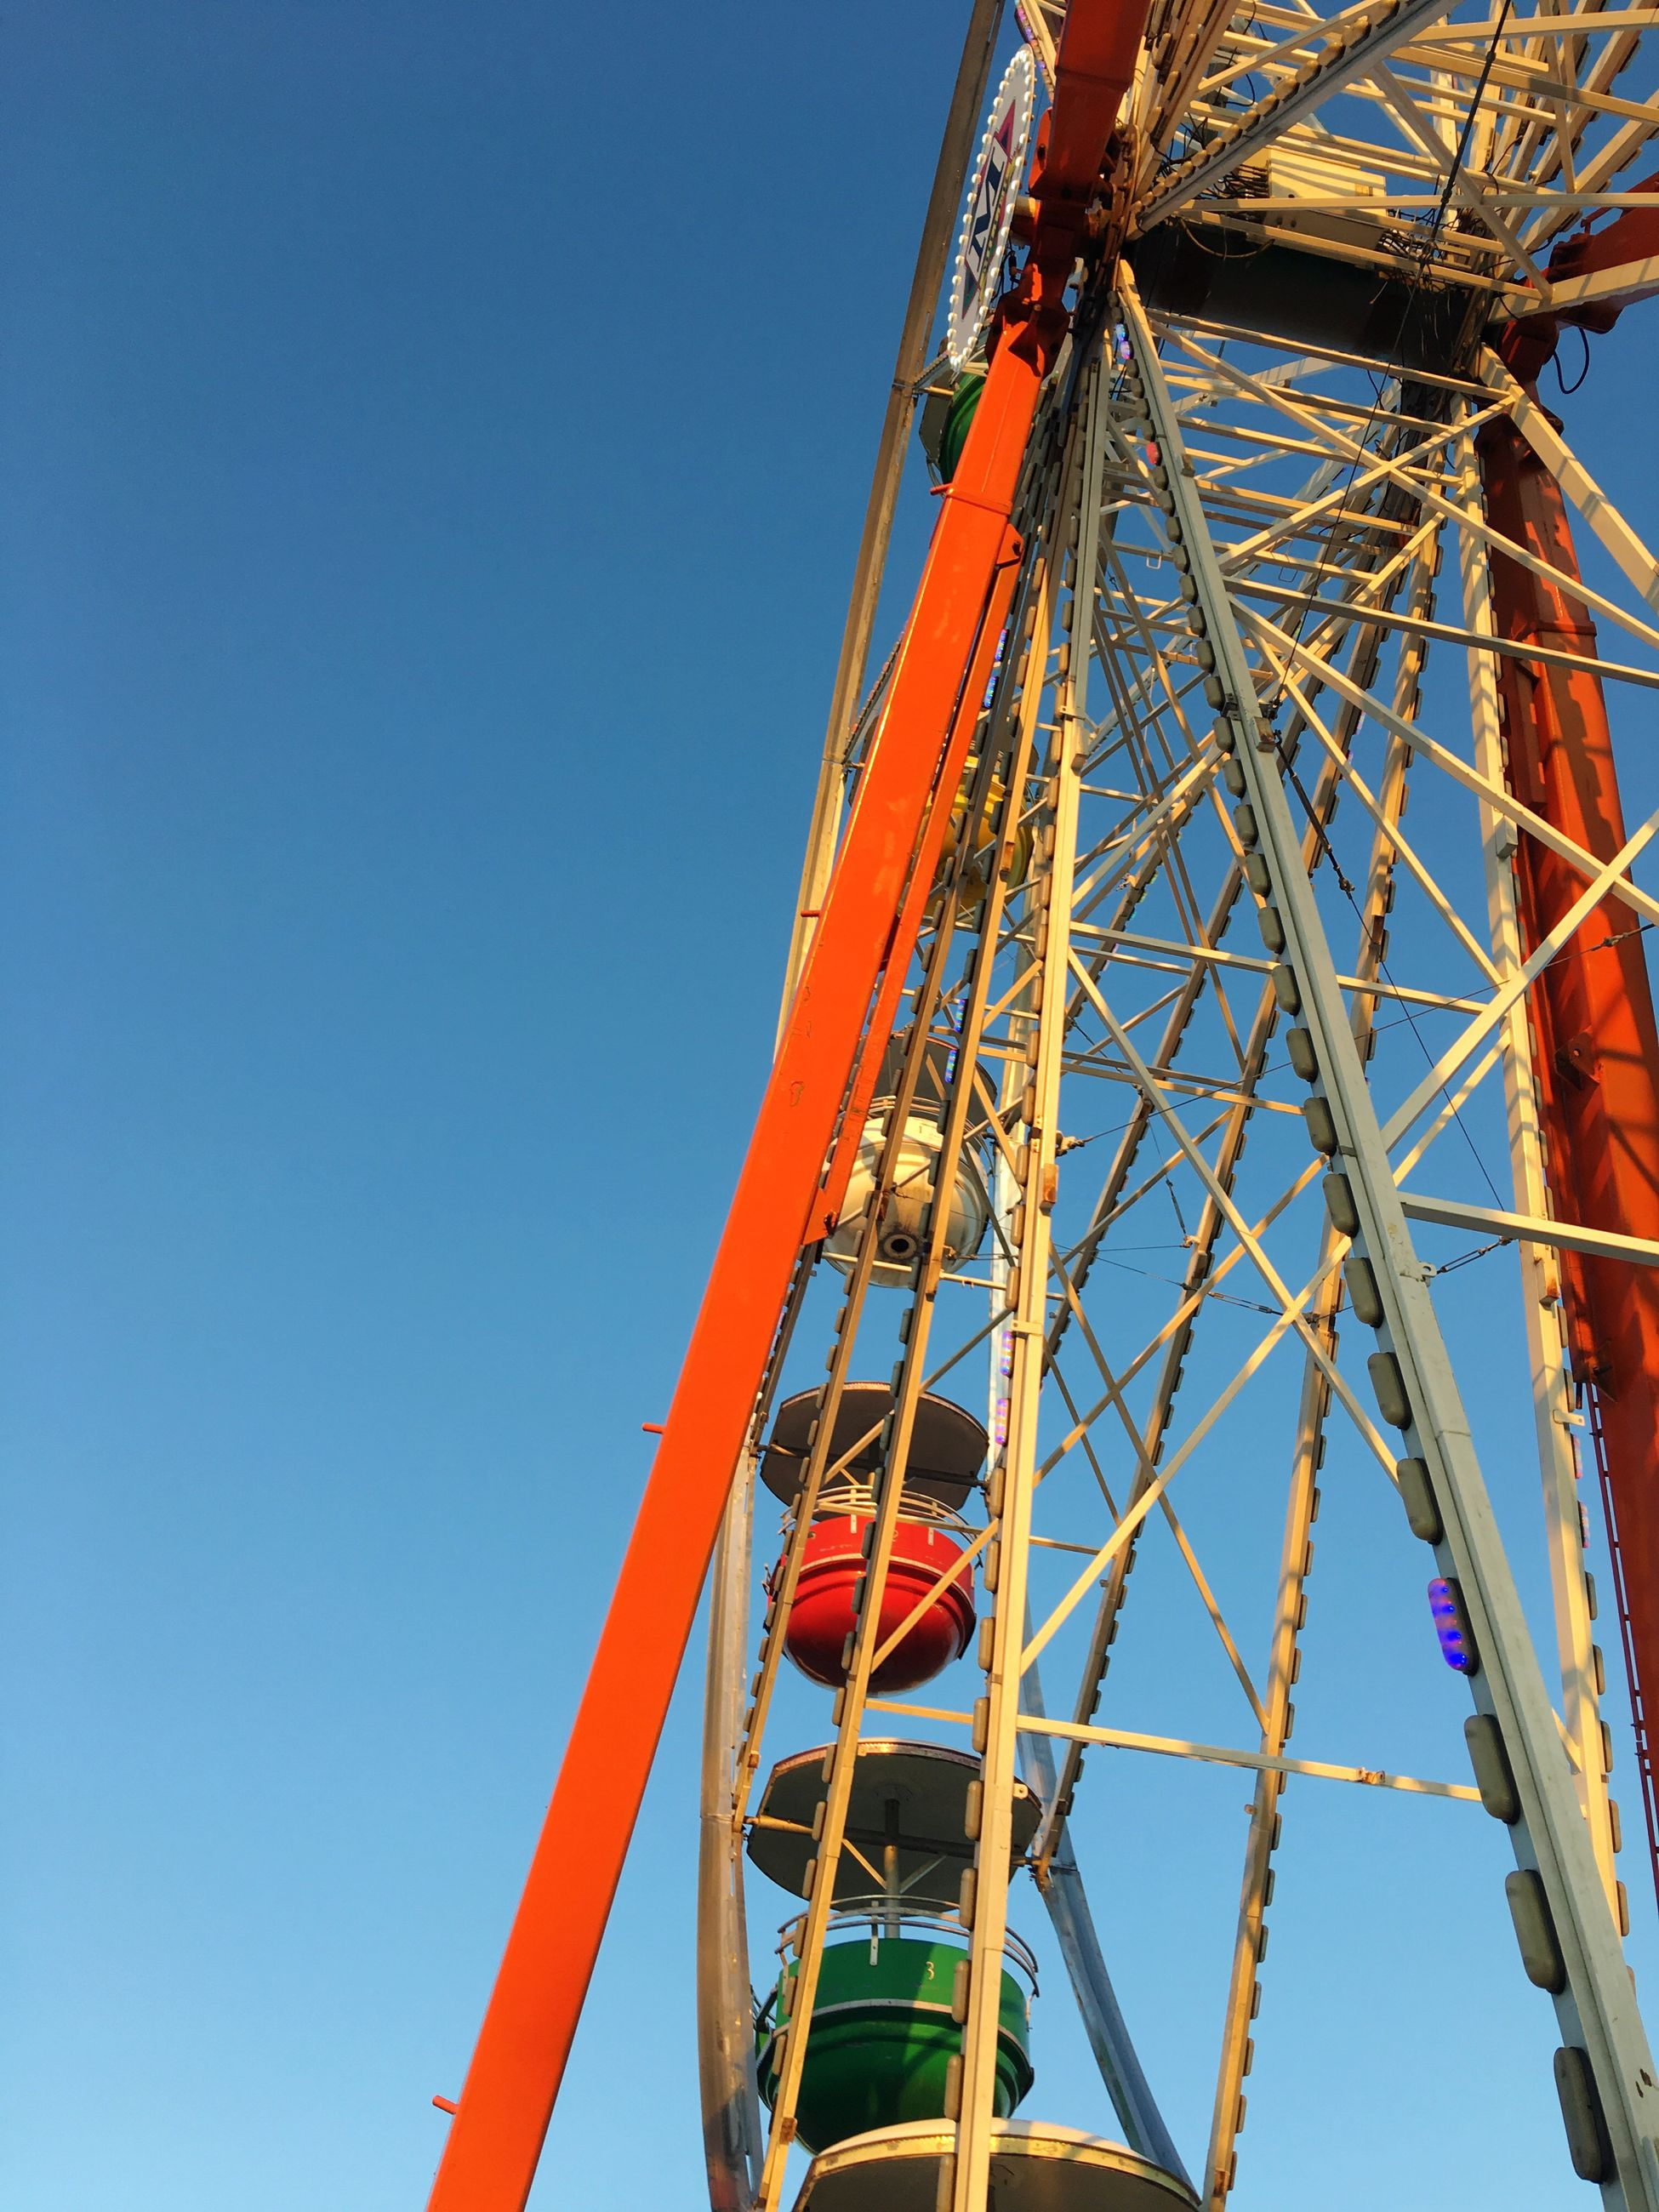 arts culture and entertainment, amusement park, low angle view, amusement park ride, blue, day, clear sky, ferris wheel, no people, outdoors, childhood, sky